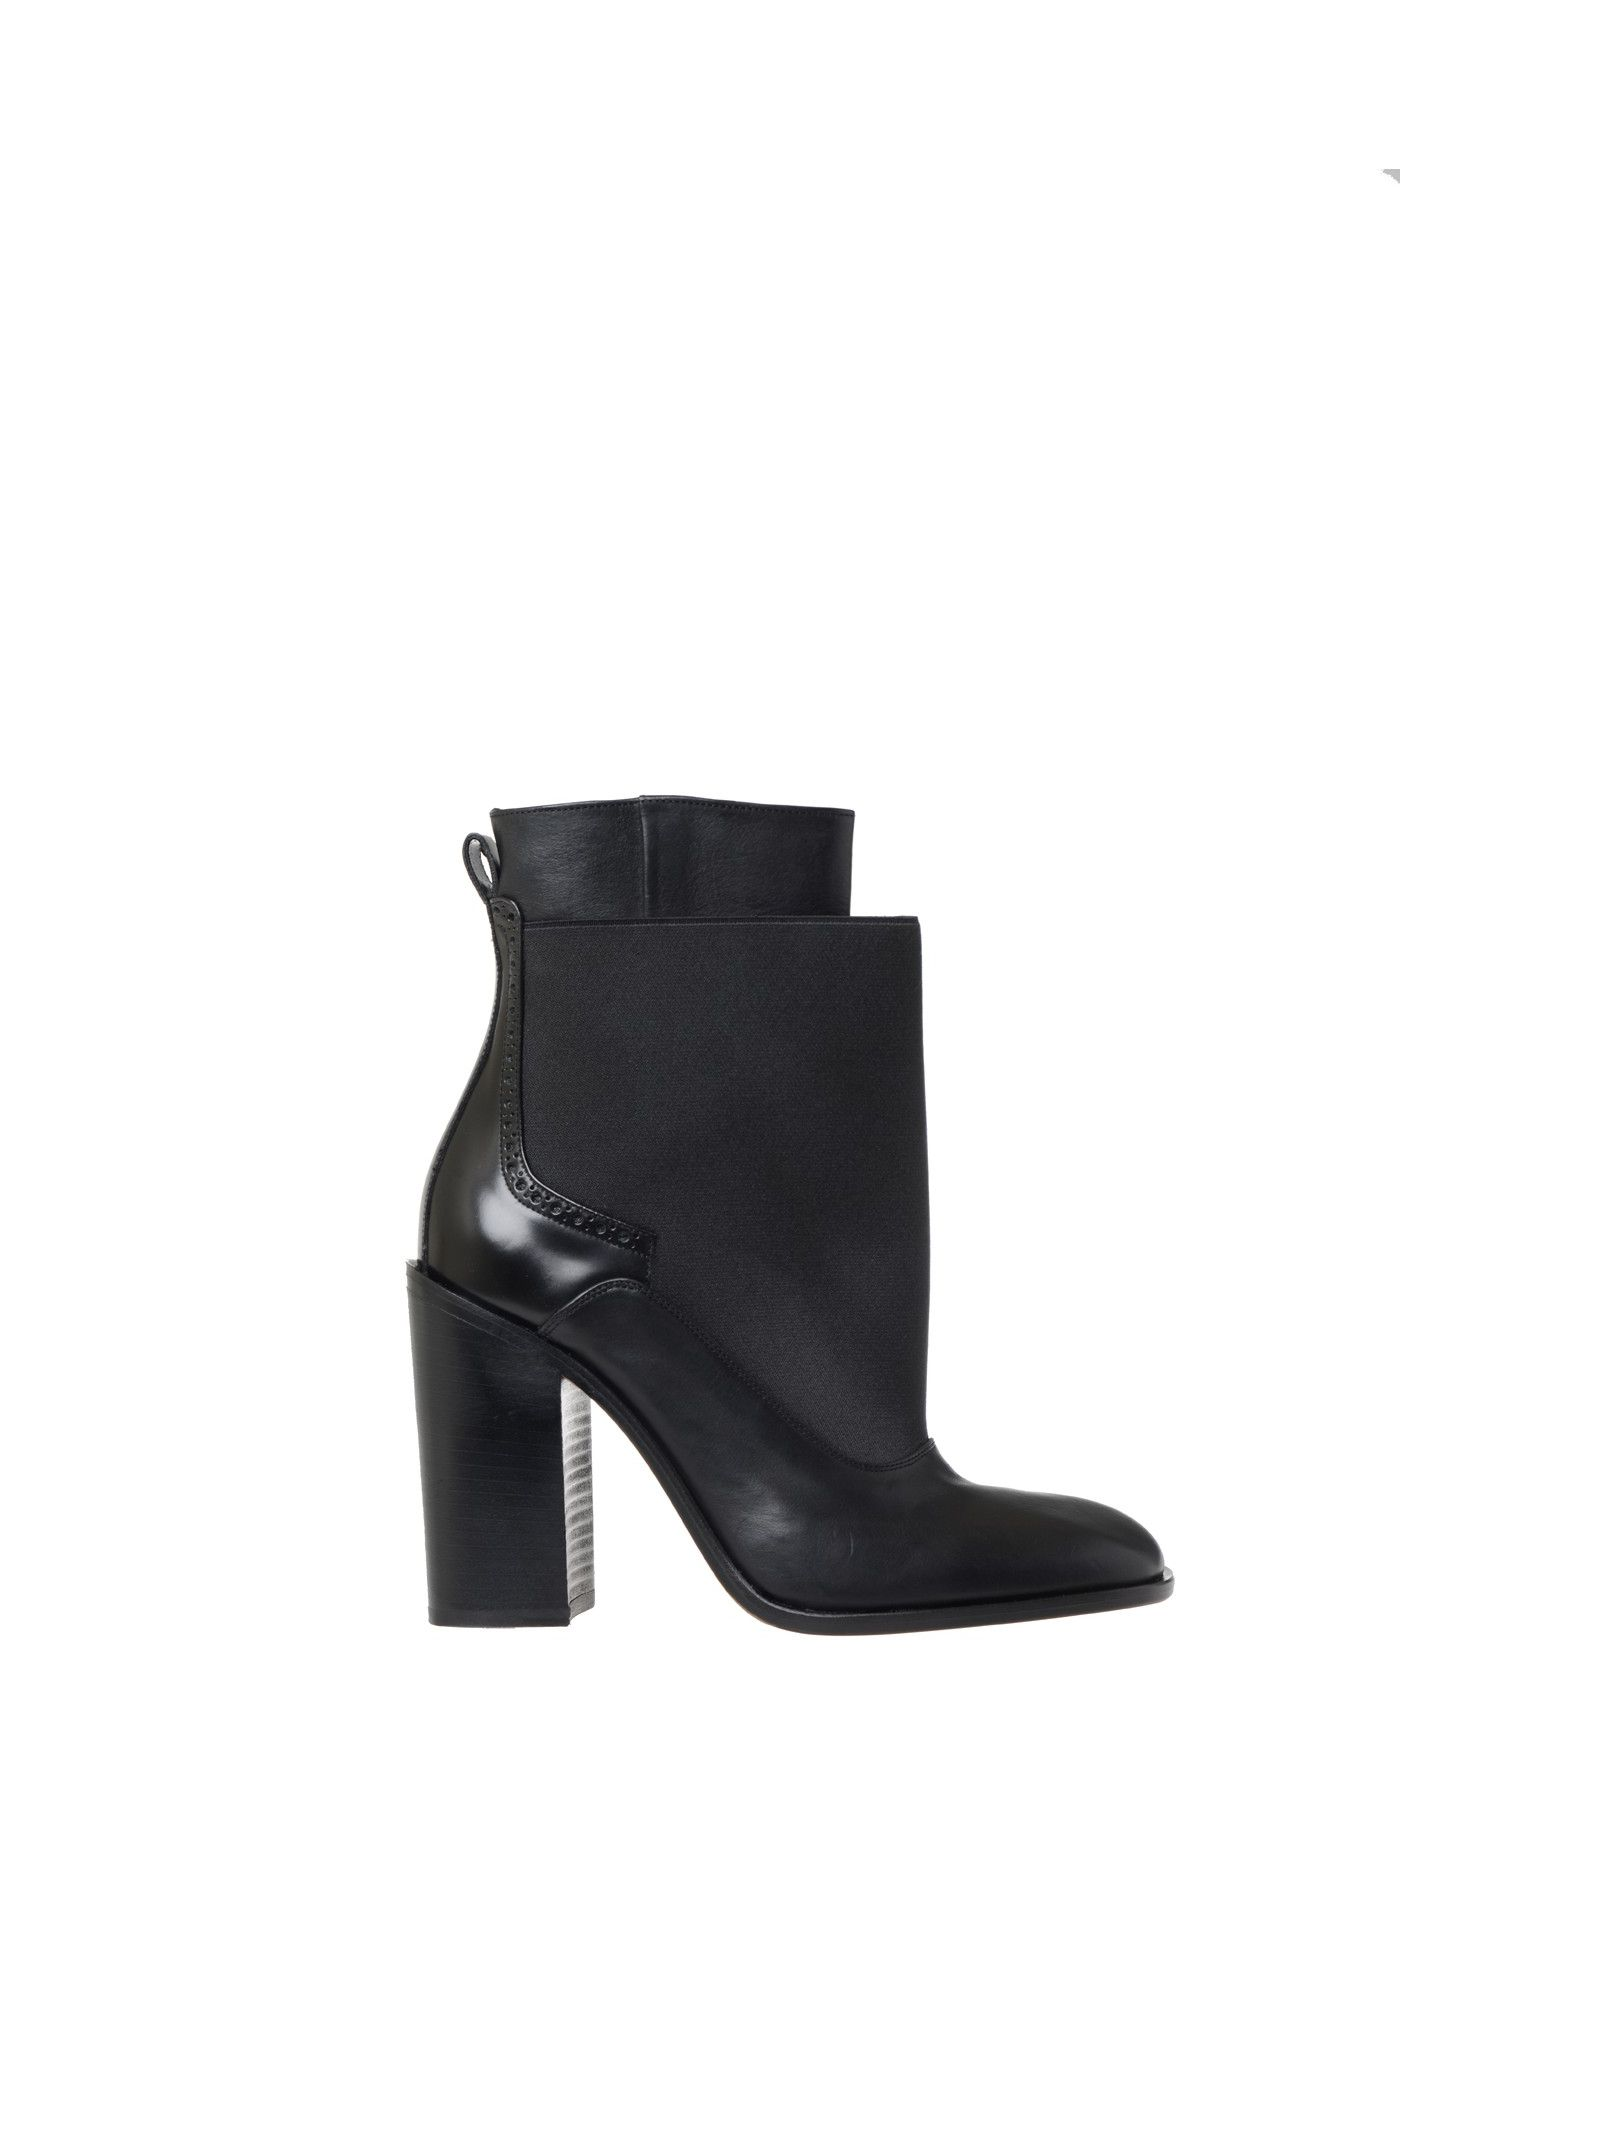 Ankle boots in pelle Sole: Real leather Details: Leather ankle boots, Tone-on-tone stretch fabric insert, Round toe, Brogue detail on the back, Closure on the inner side of the foot, Leather innersole